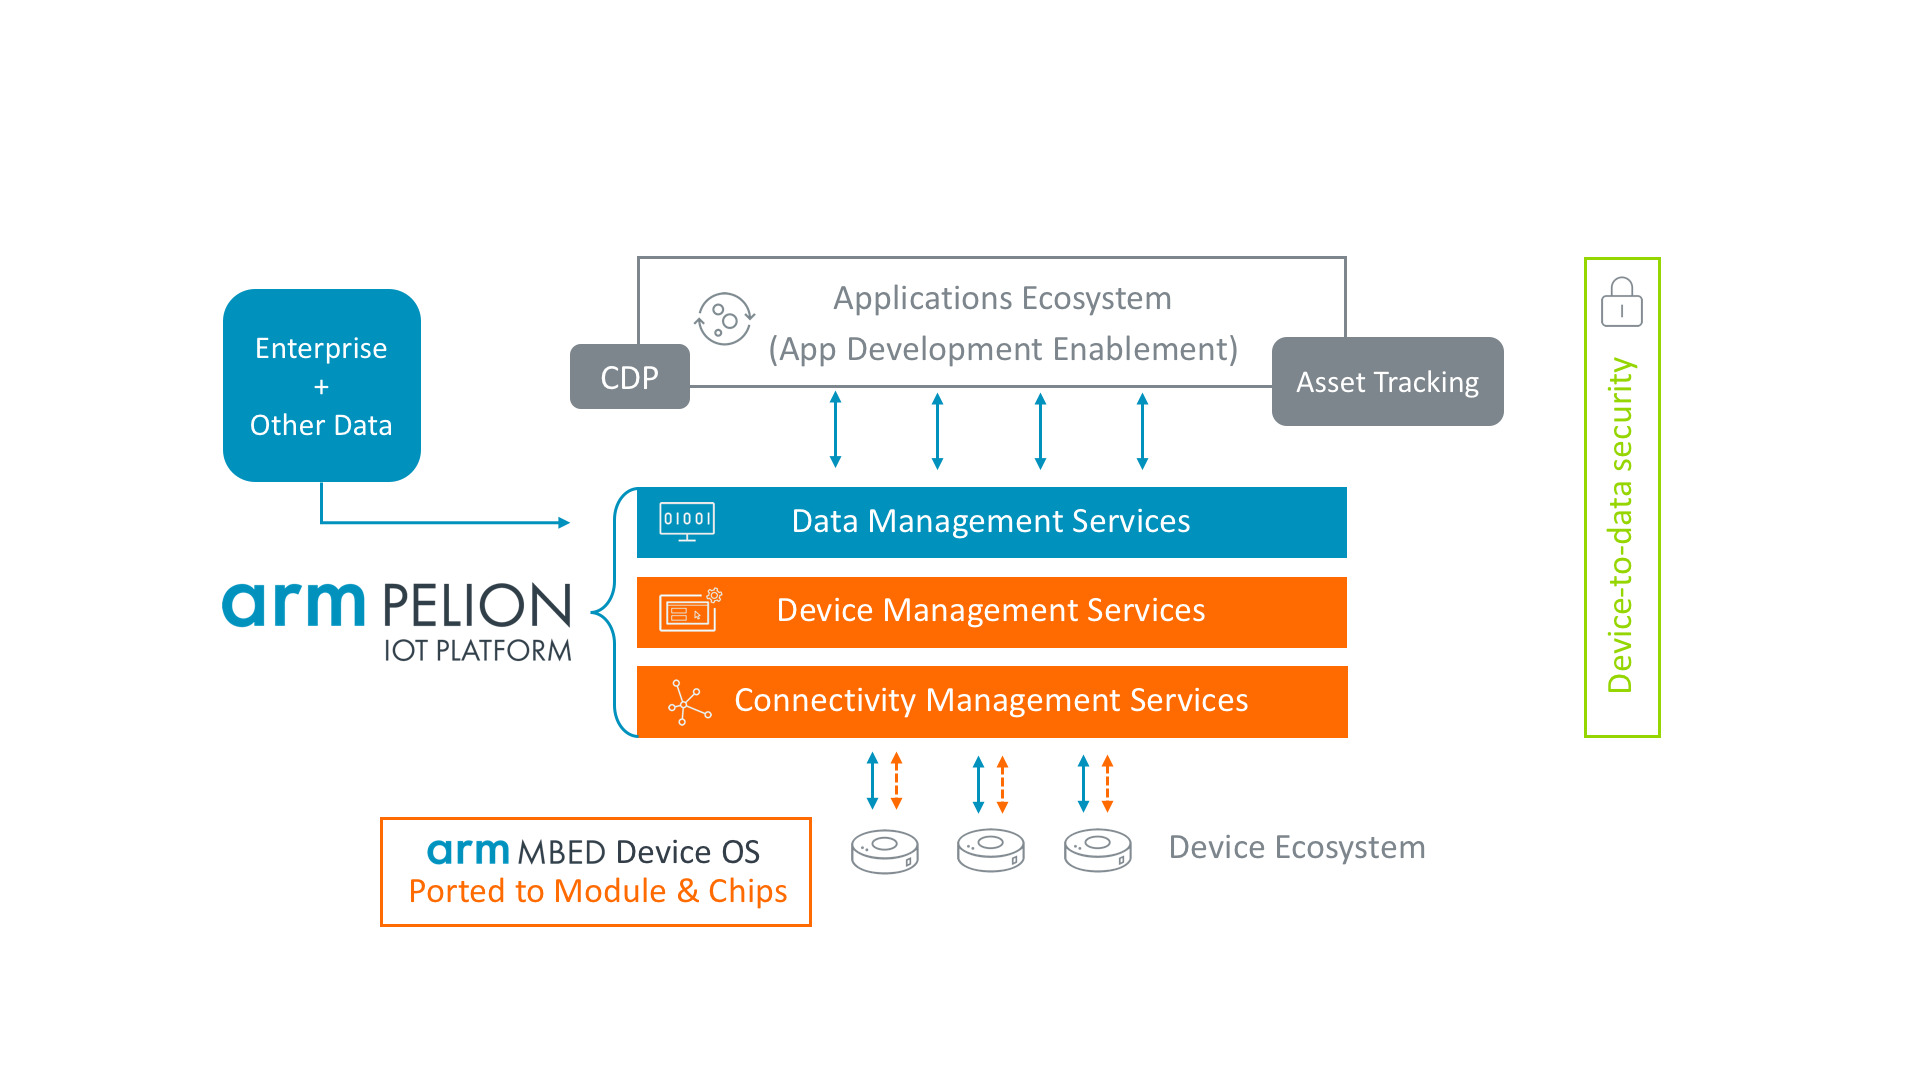 Arm acquires data management service Treasure Data to bolster its IoT platform